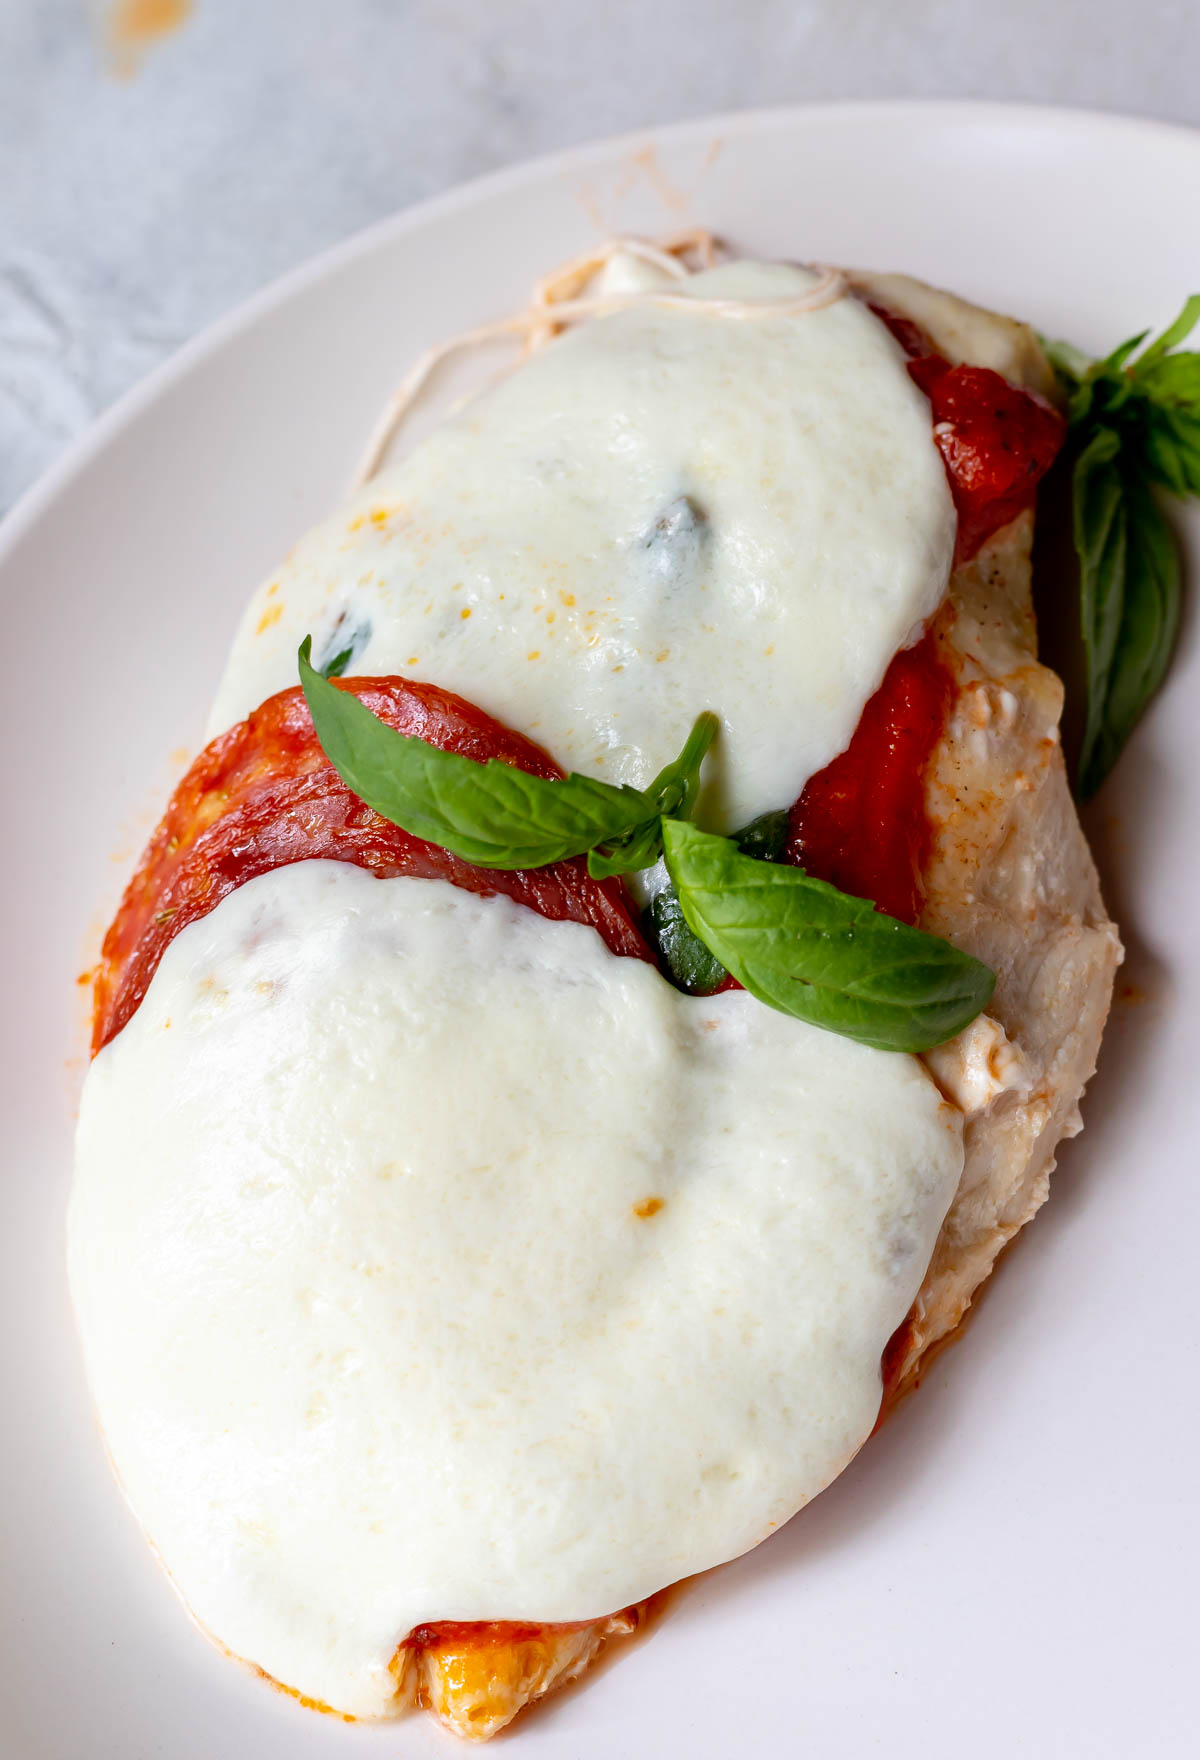 pizza chicken breast smothered with mozzarella and pepperoni, topped with basil leaves